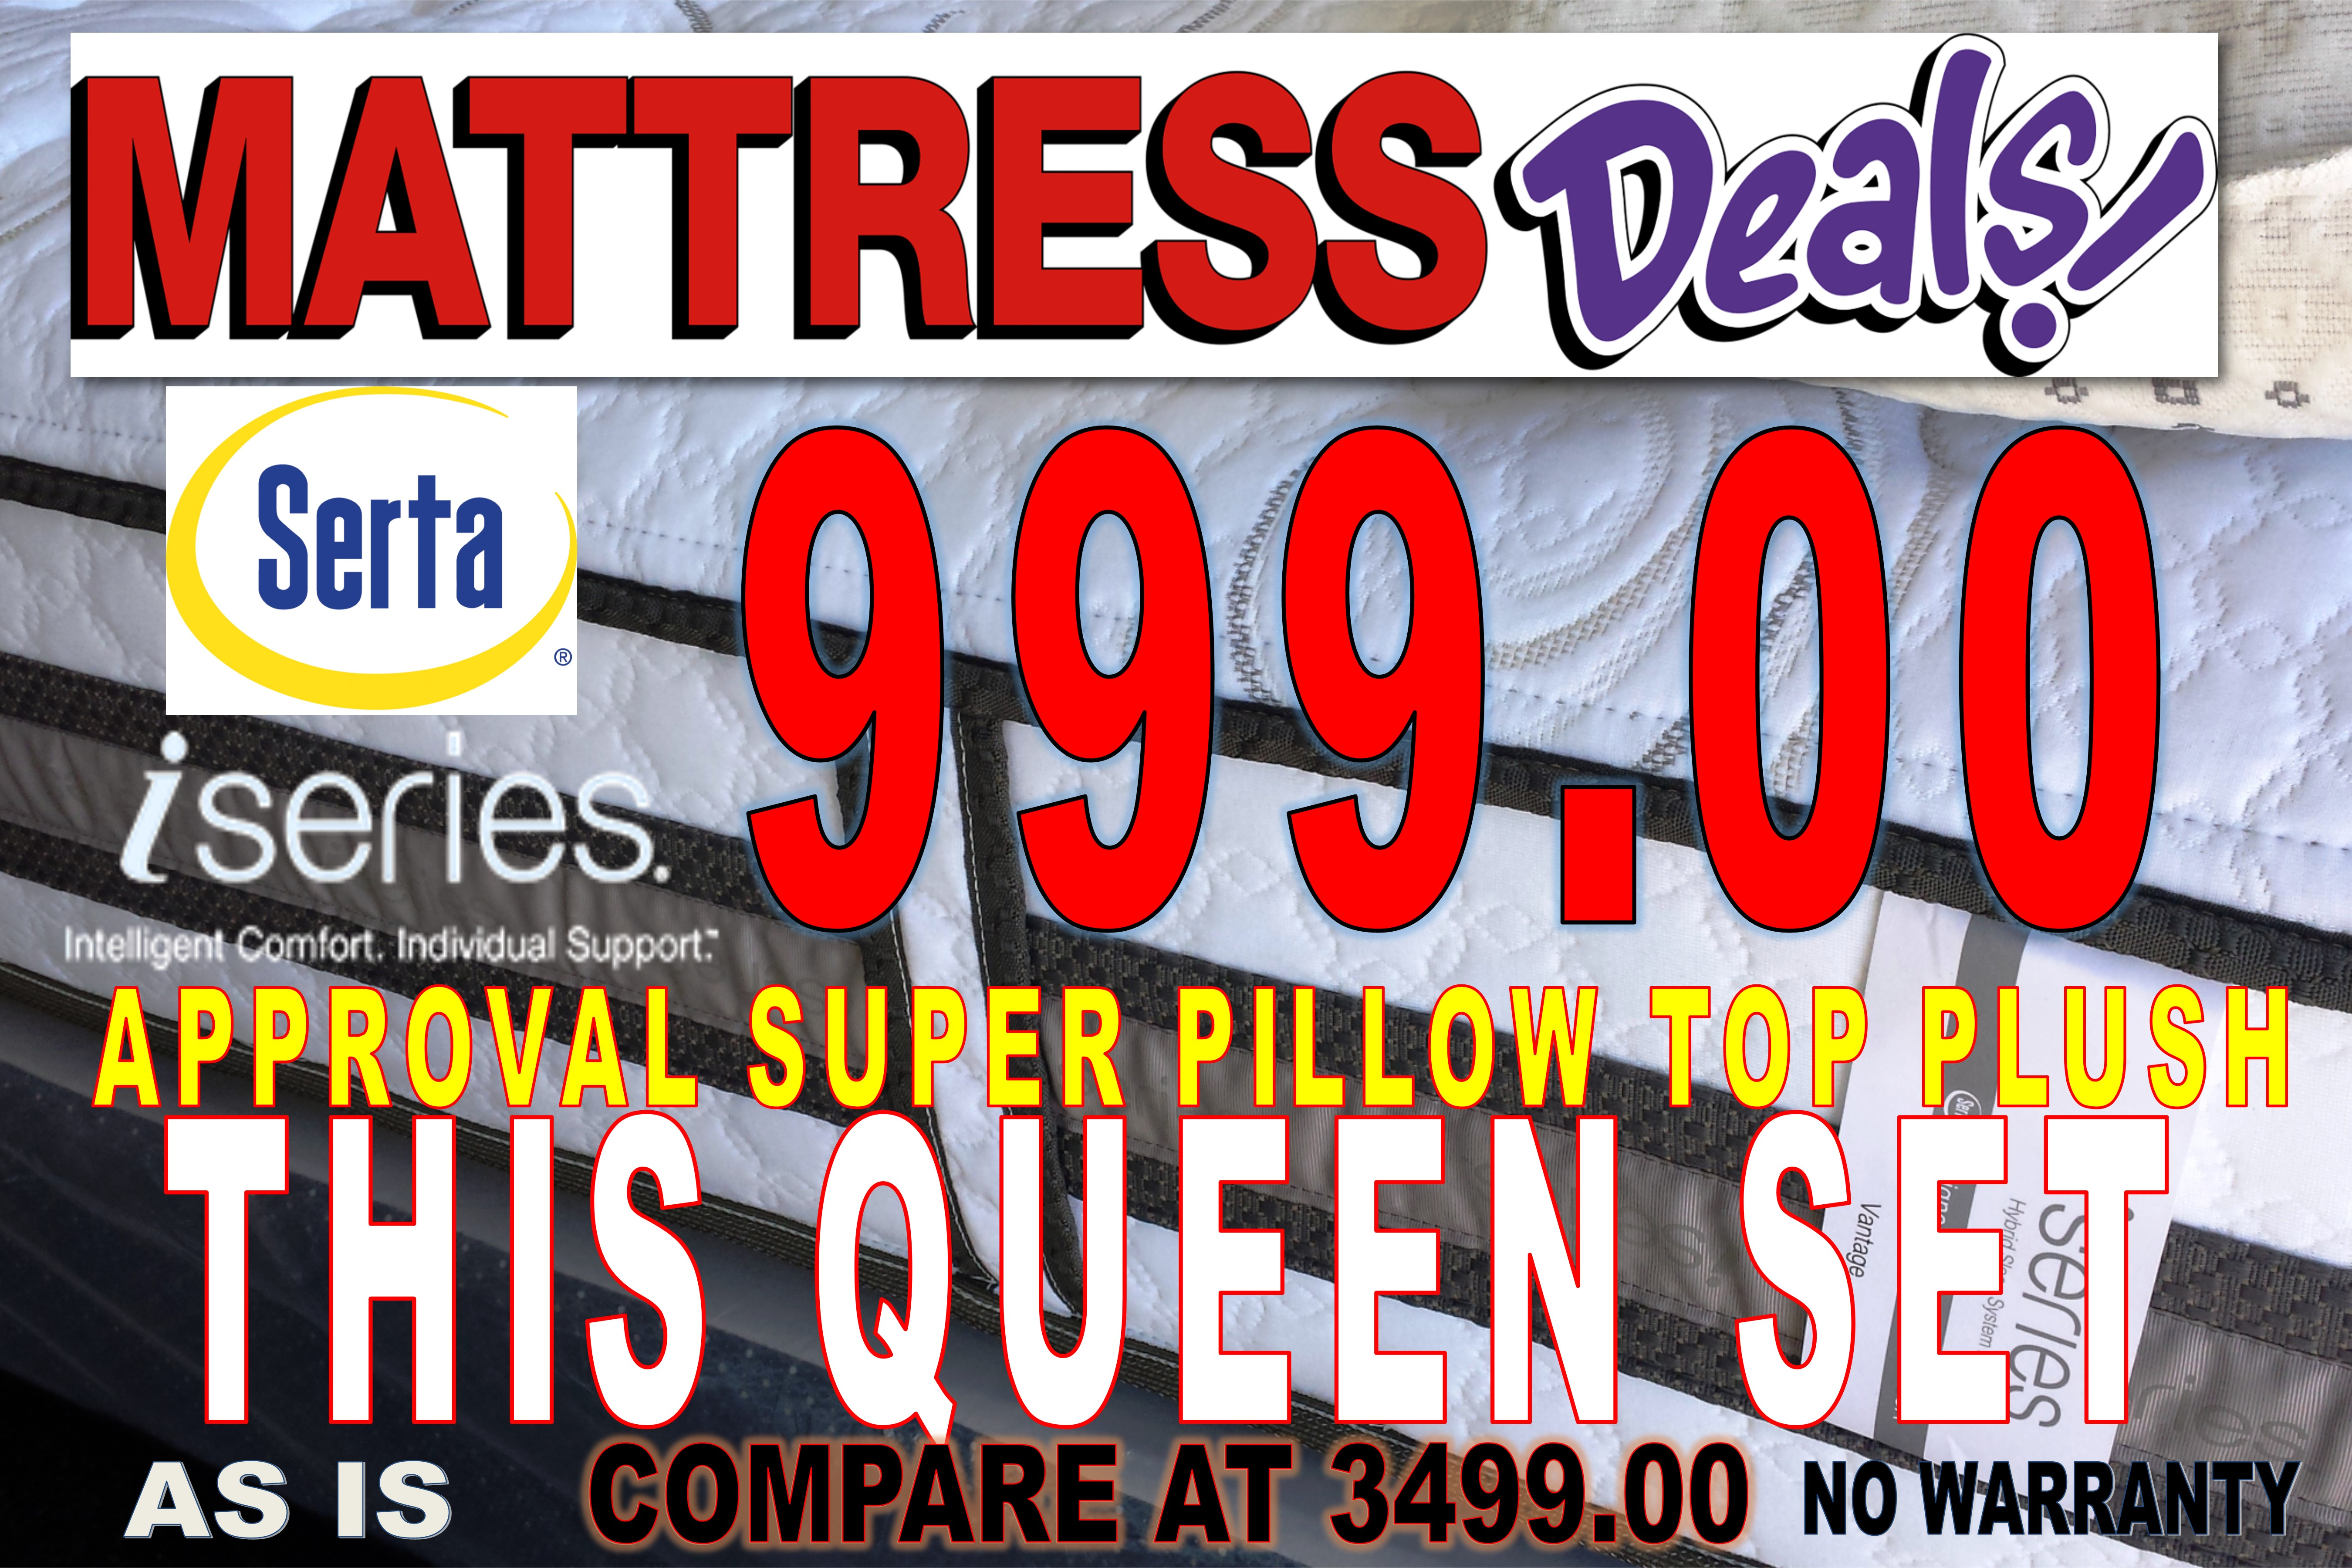 Mattress Deals image 45